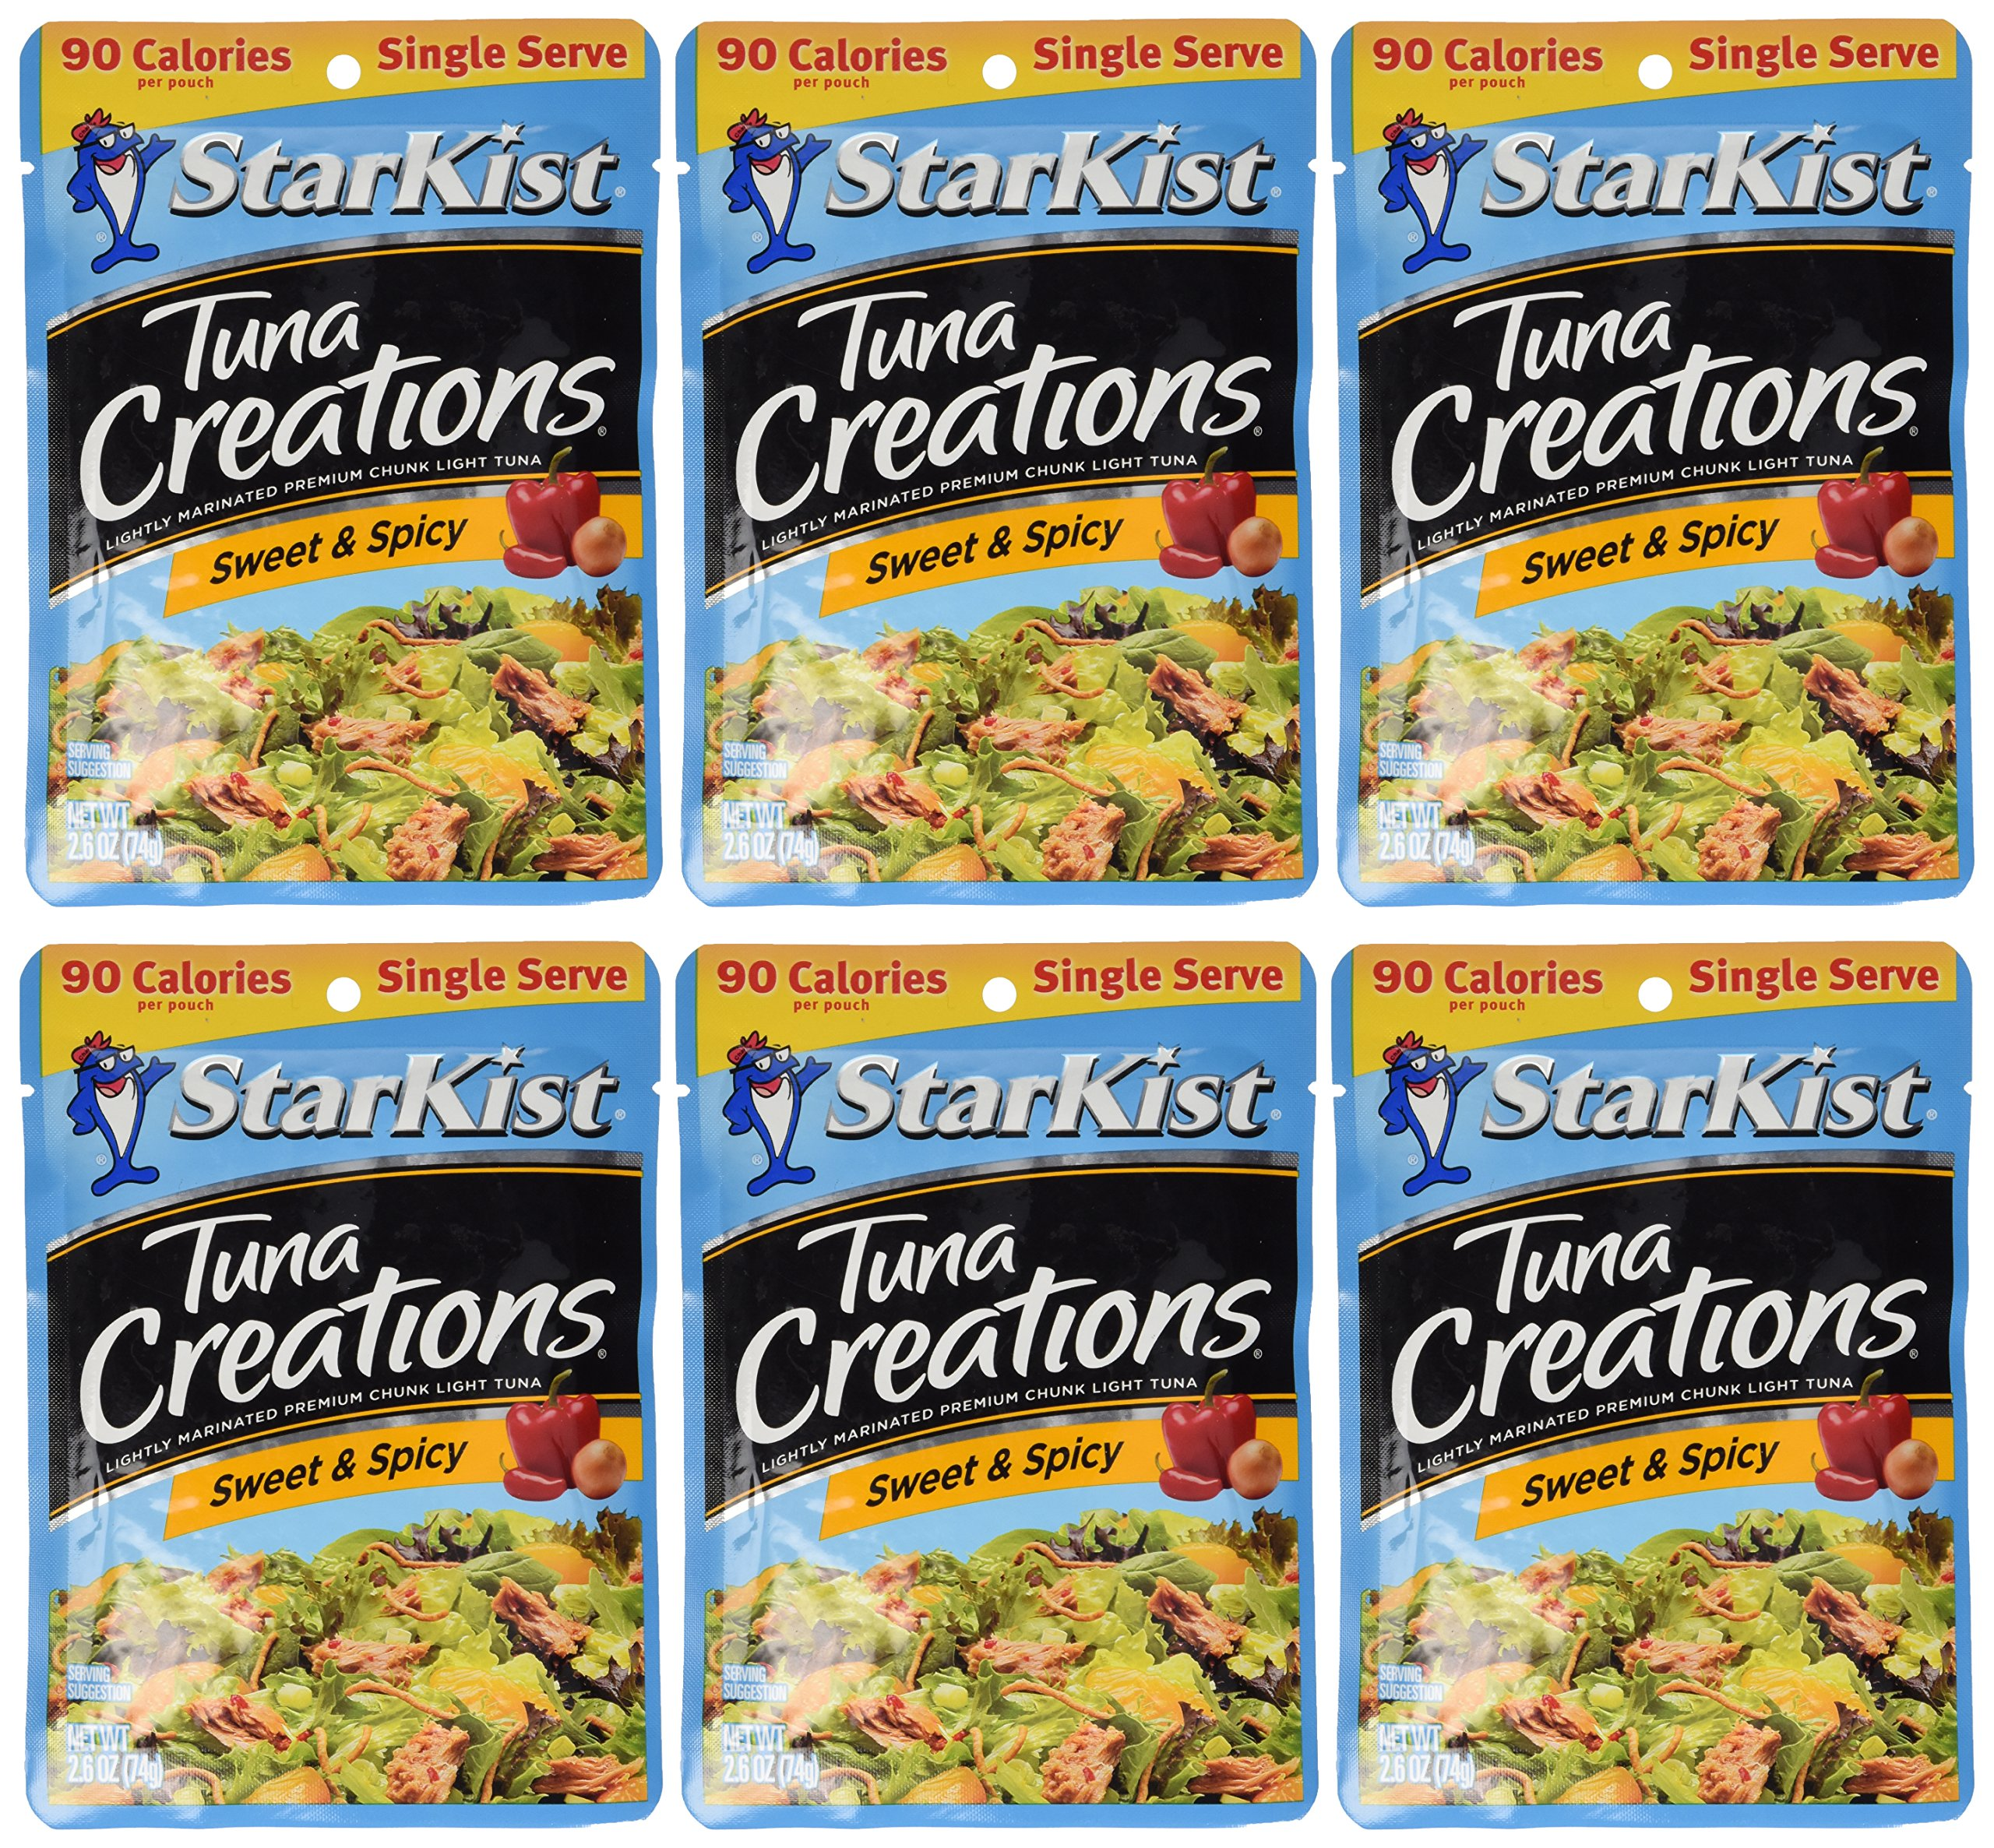 Starkist Tuna Creations, Sweet & Spicy, Single Serve 2.6-Ounce Pouch (Pack of 6)